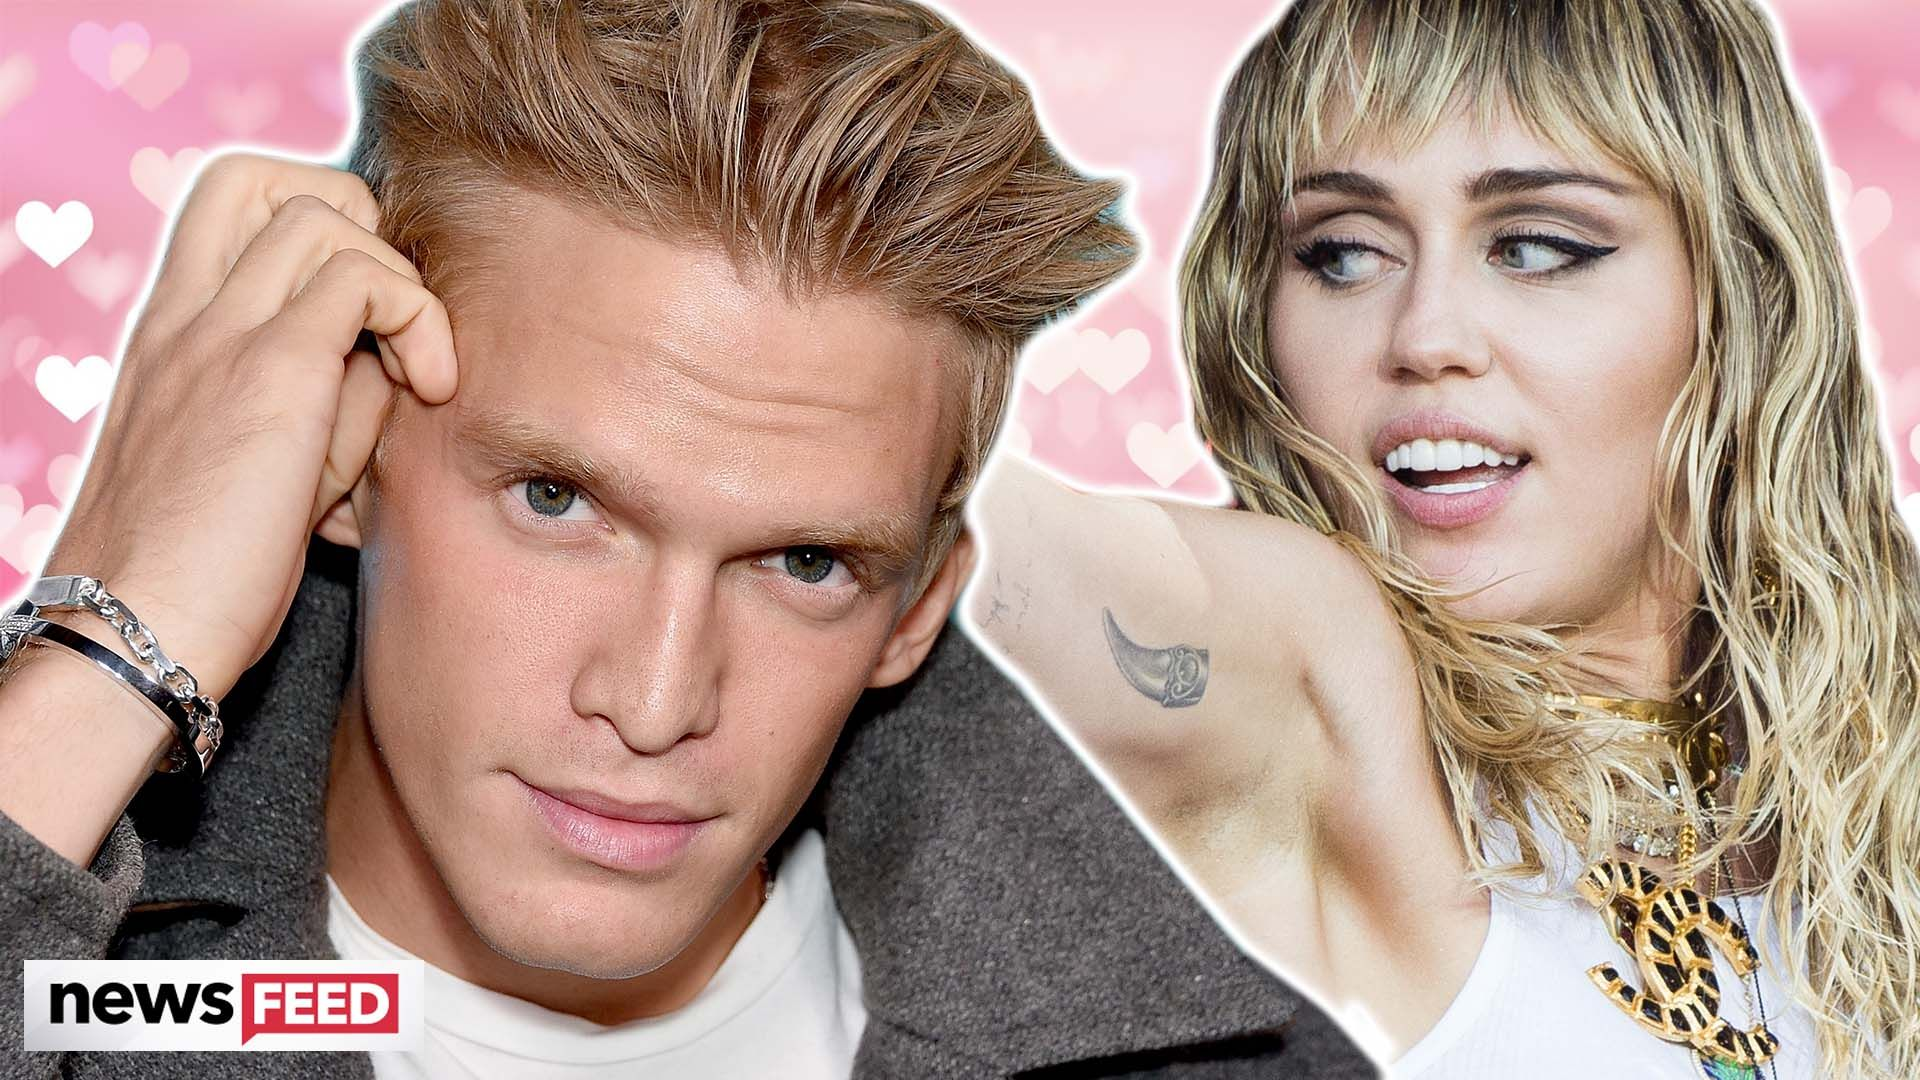 Miley Cyrus Wears Lacy Black Lingerie In Two New NSFW Photos With Cody Simpson